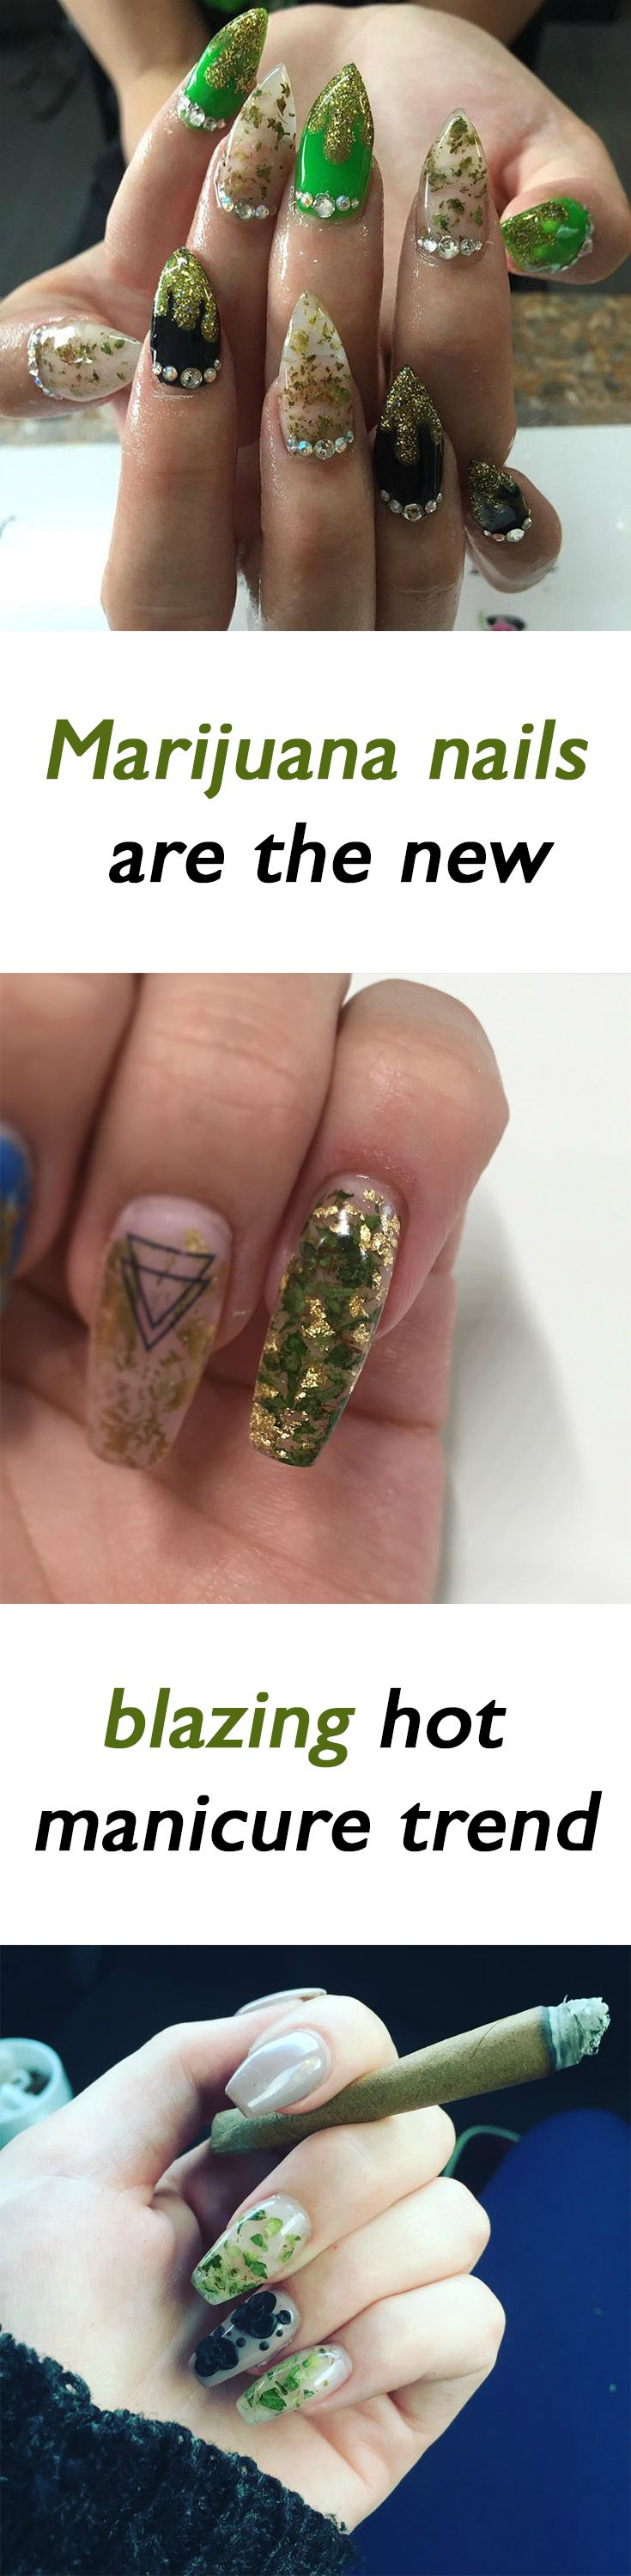 This nail trend is illegal in some states.